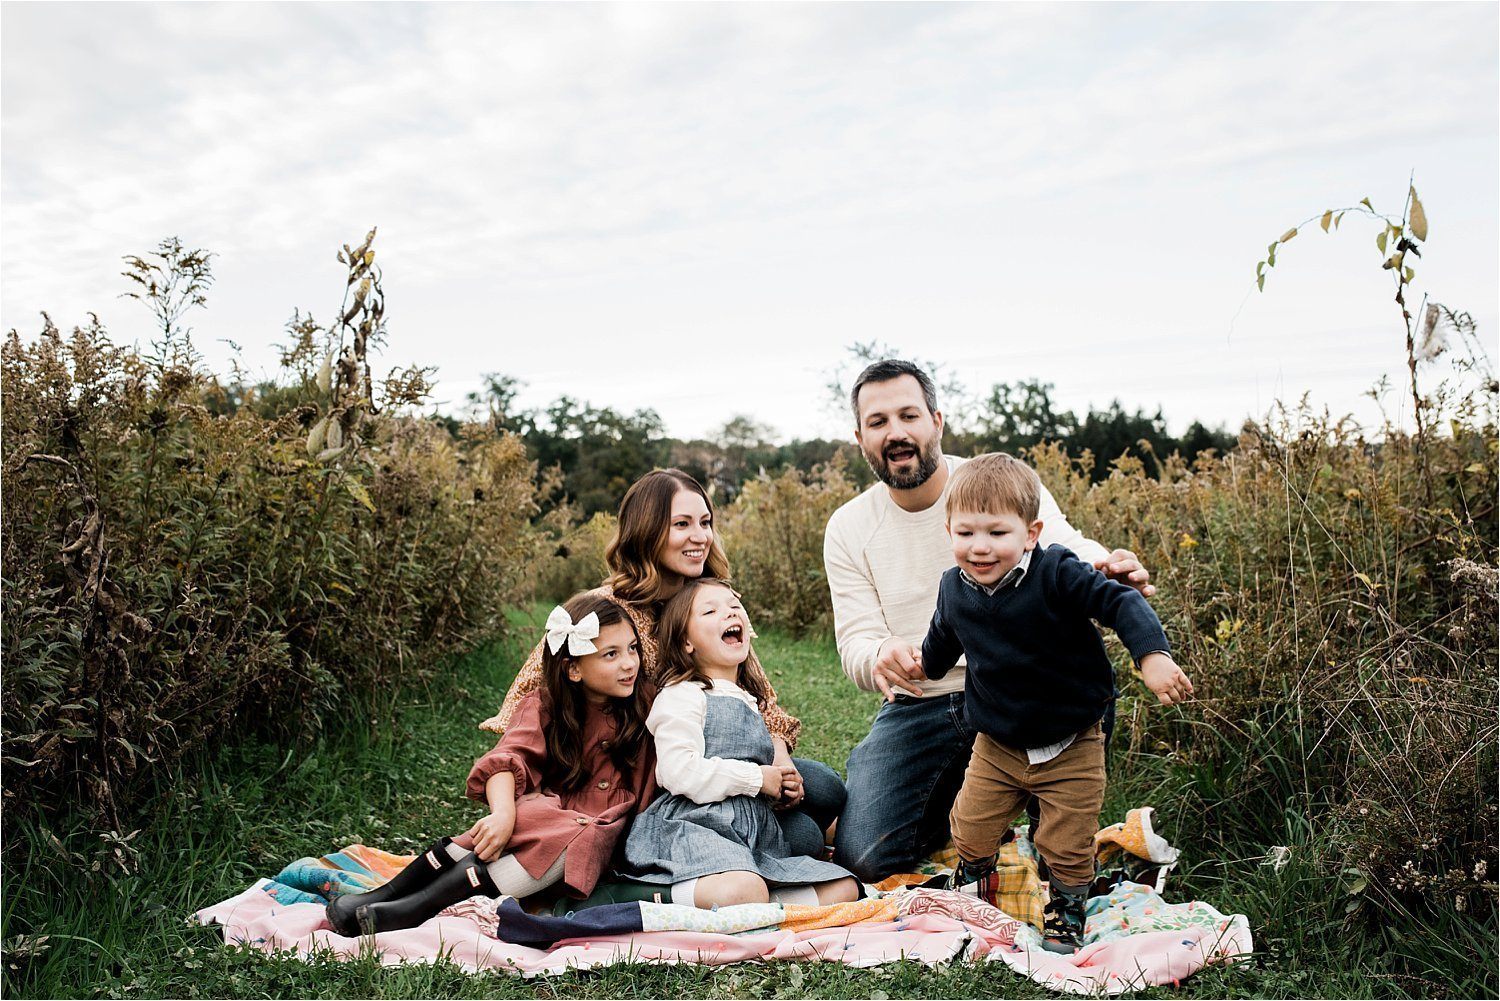 lifestyle family photo in open field